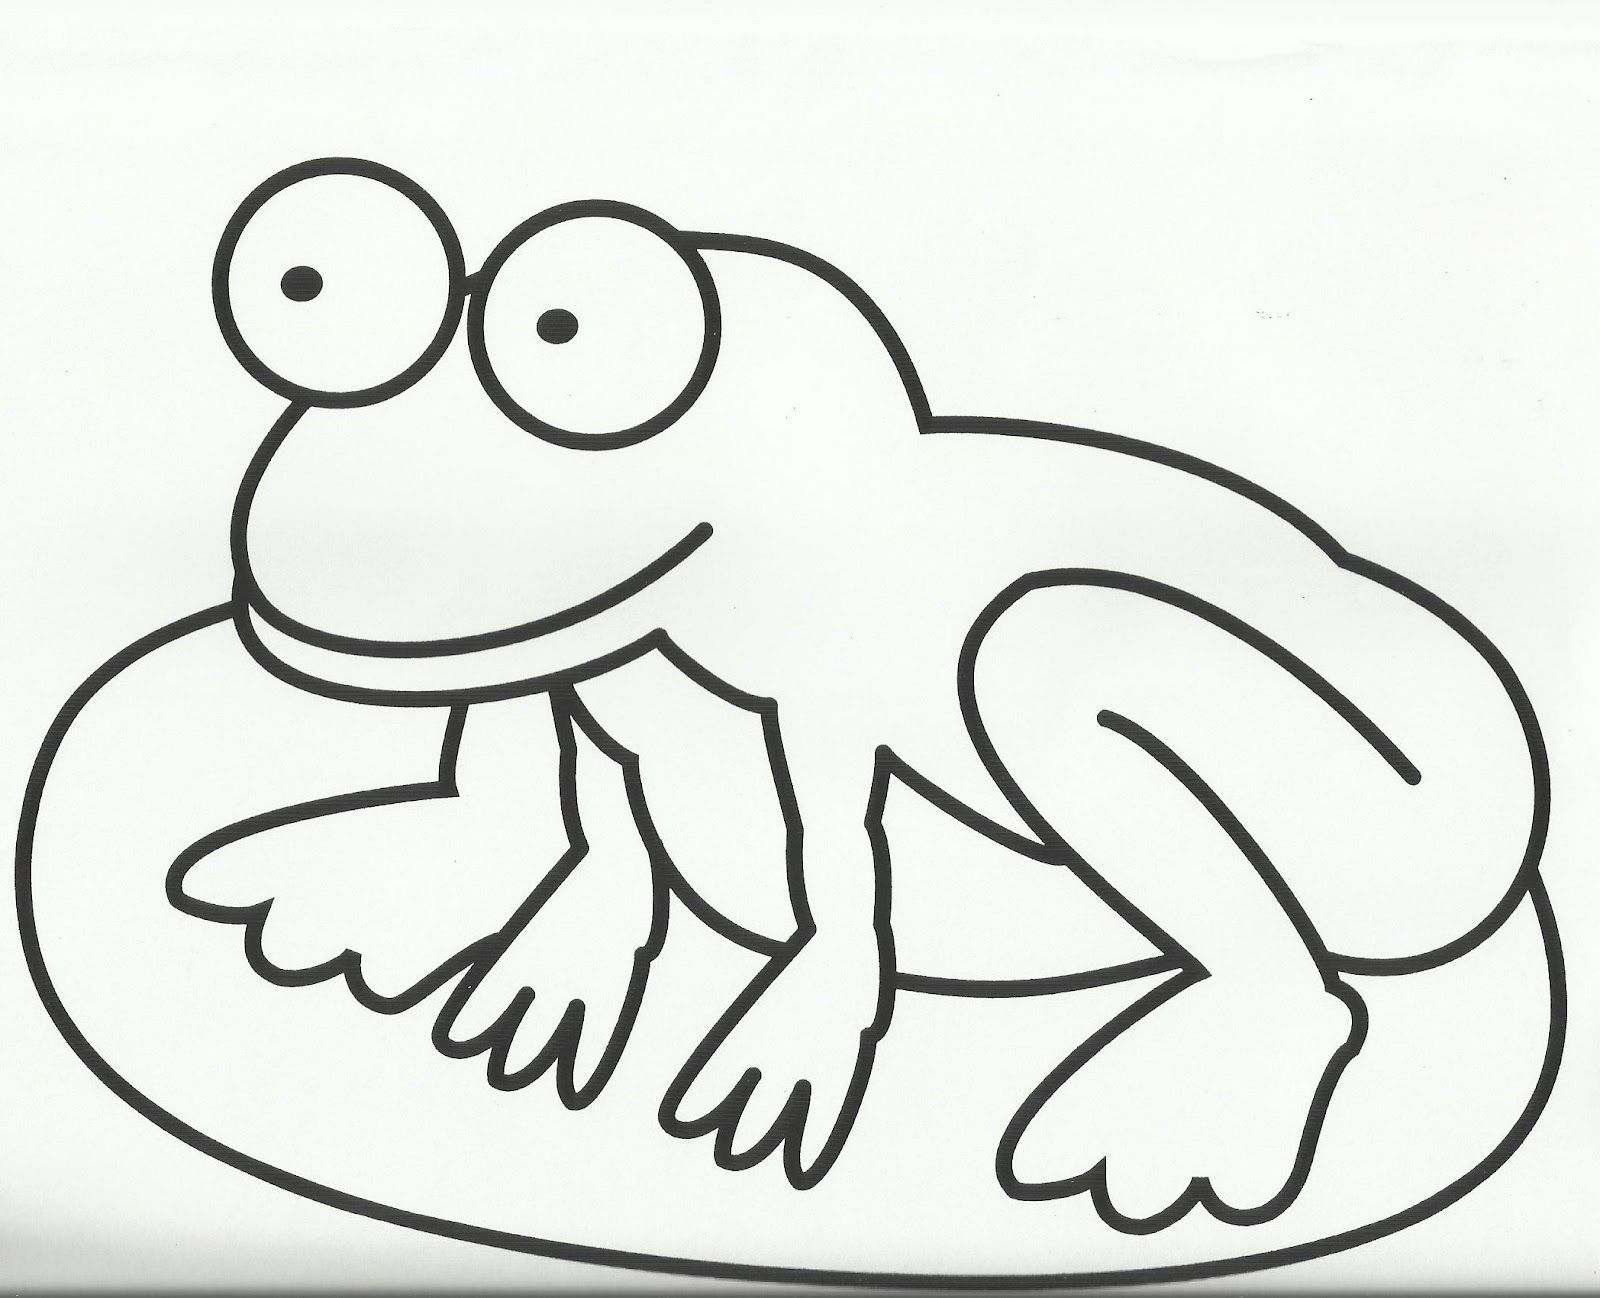 frog on lily coloring picture - Frog Coloring Pages Free Printable 2